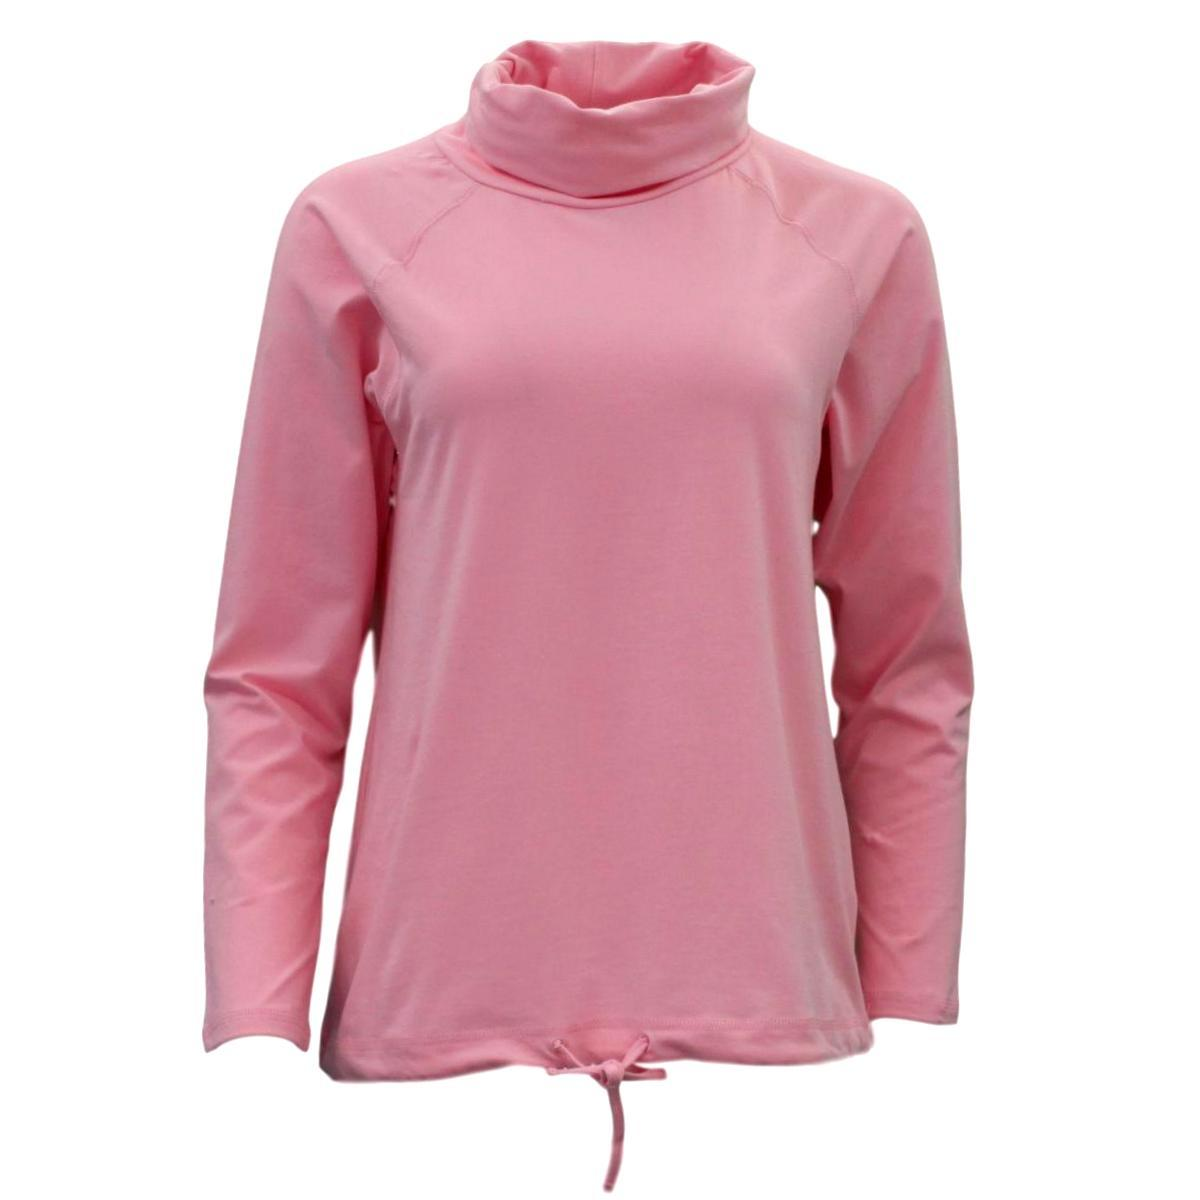 Women-039-s-Cotton-Long-Sleeve-Turtle-Neck-Skivvy-Top-High-Neck-w-Drawstring-Hem thumbnail 15